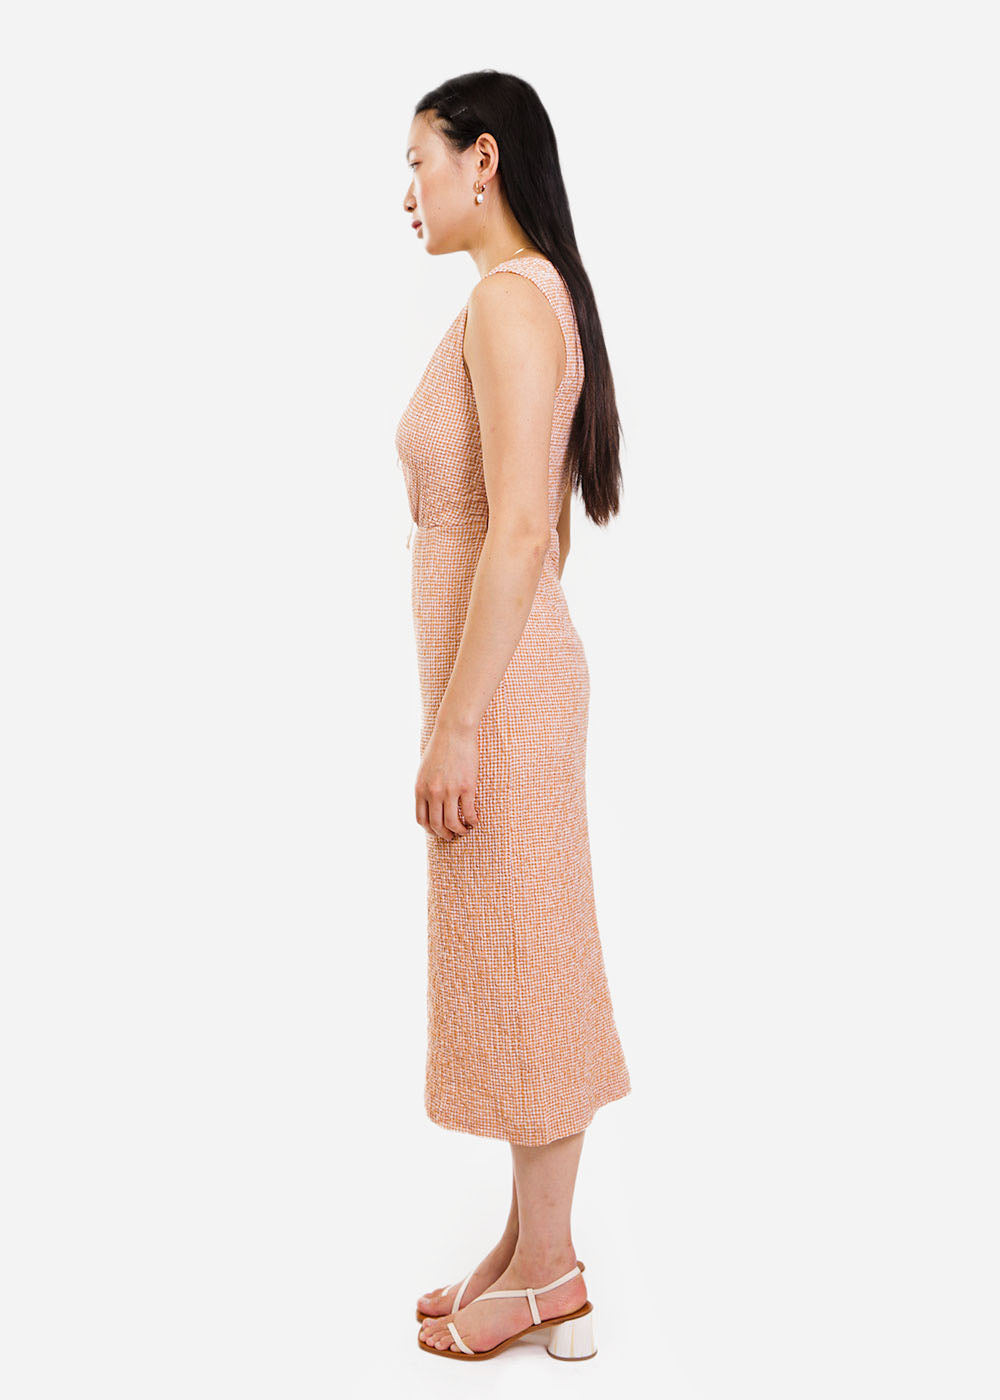 Paloma Wool Chambao Dress — Shop sustainable fashion and slow fashion at New Classics Studios